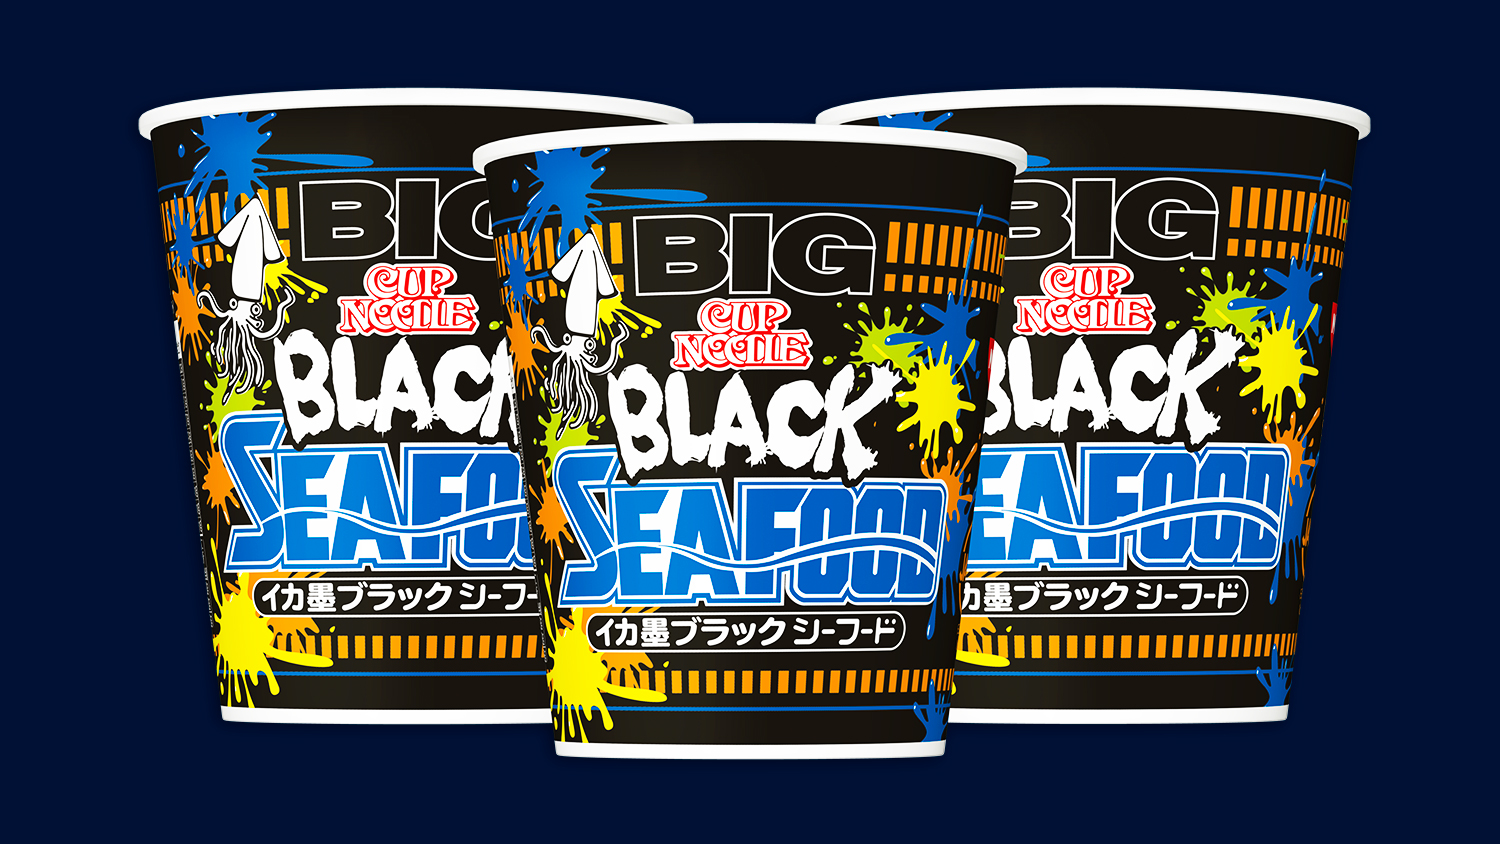 squid ink cup of noodle nissin